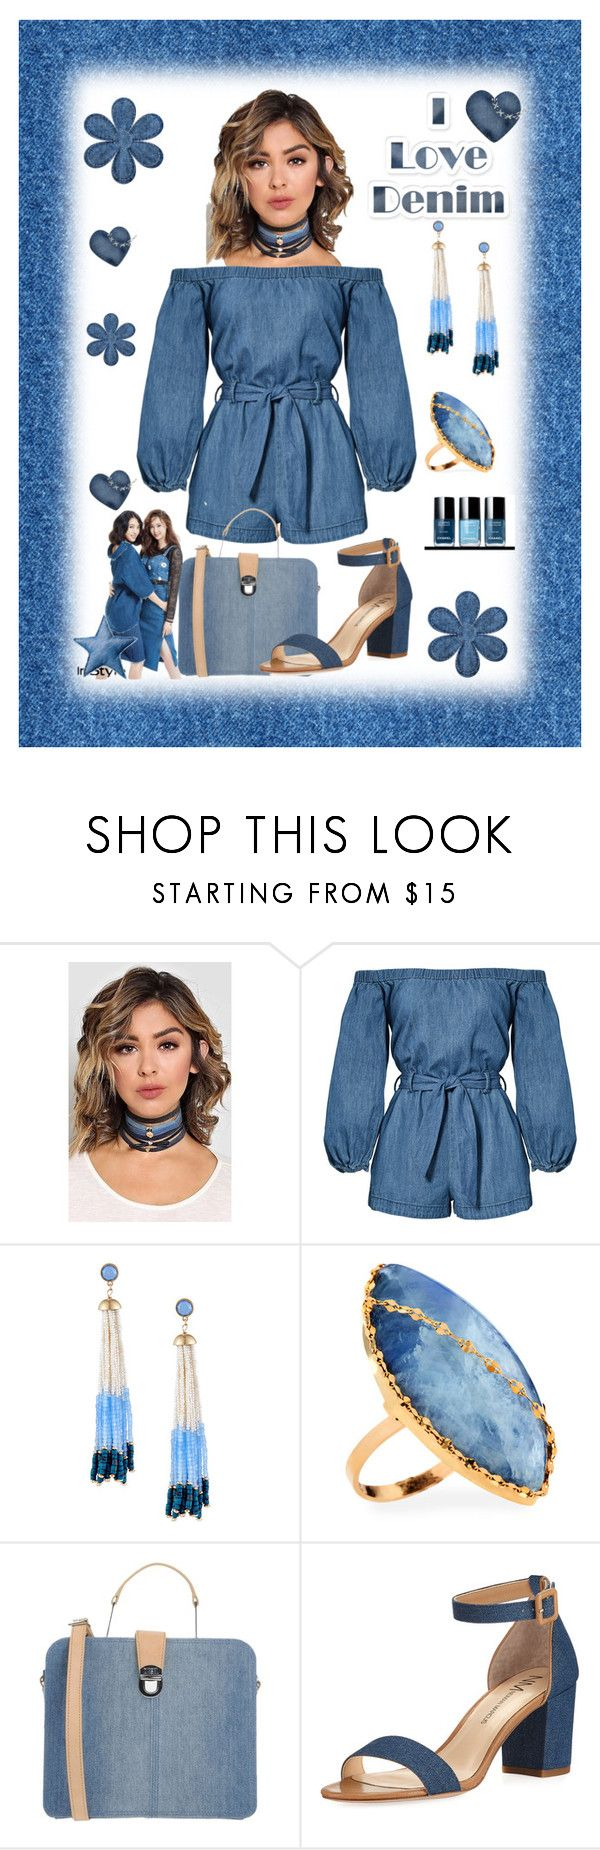 I Love Denim by marlaj-50 on Polyvore featuring Neiman Marcus, Diesel, Lana, Lydell NYC and Bloomingville